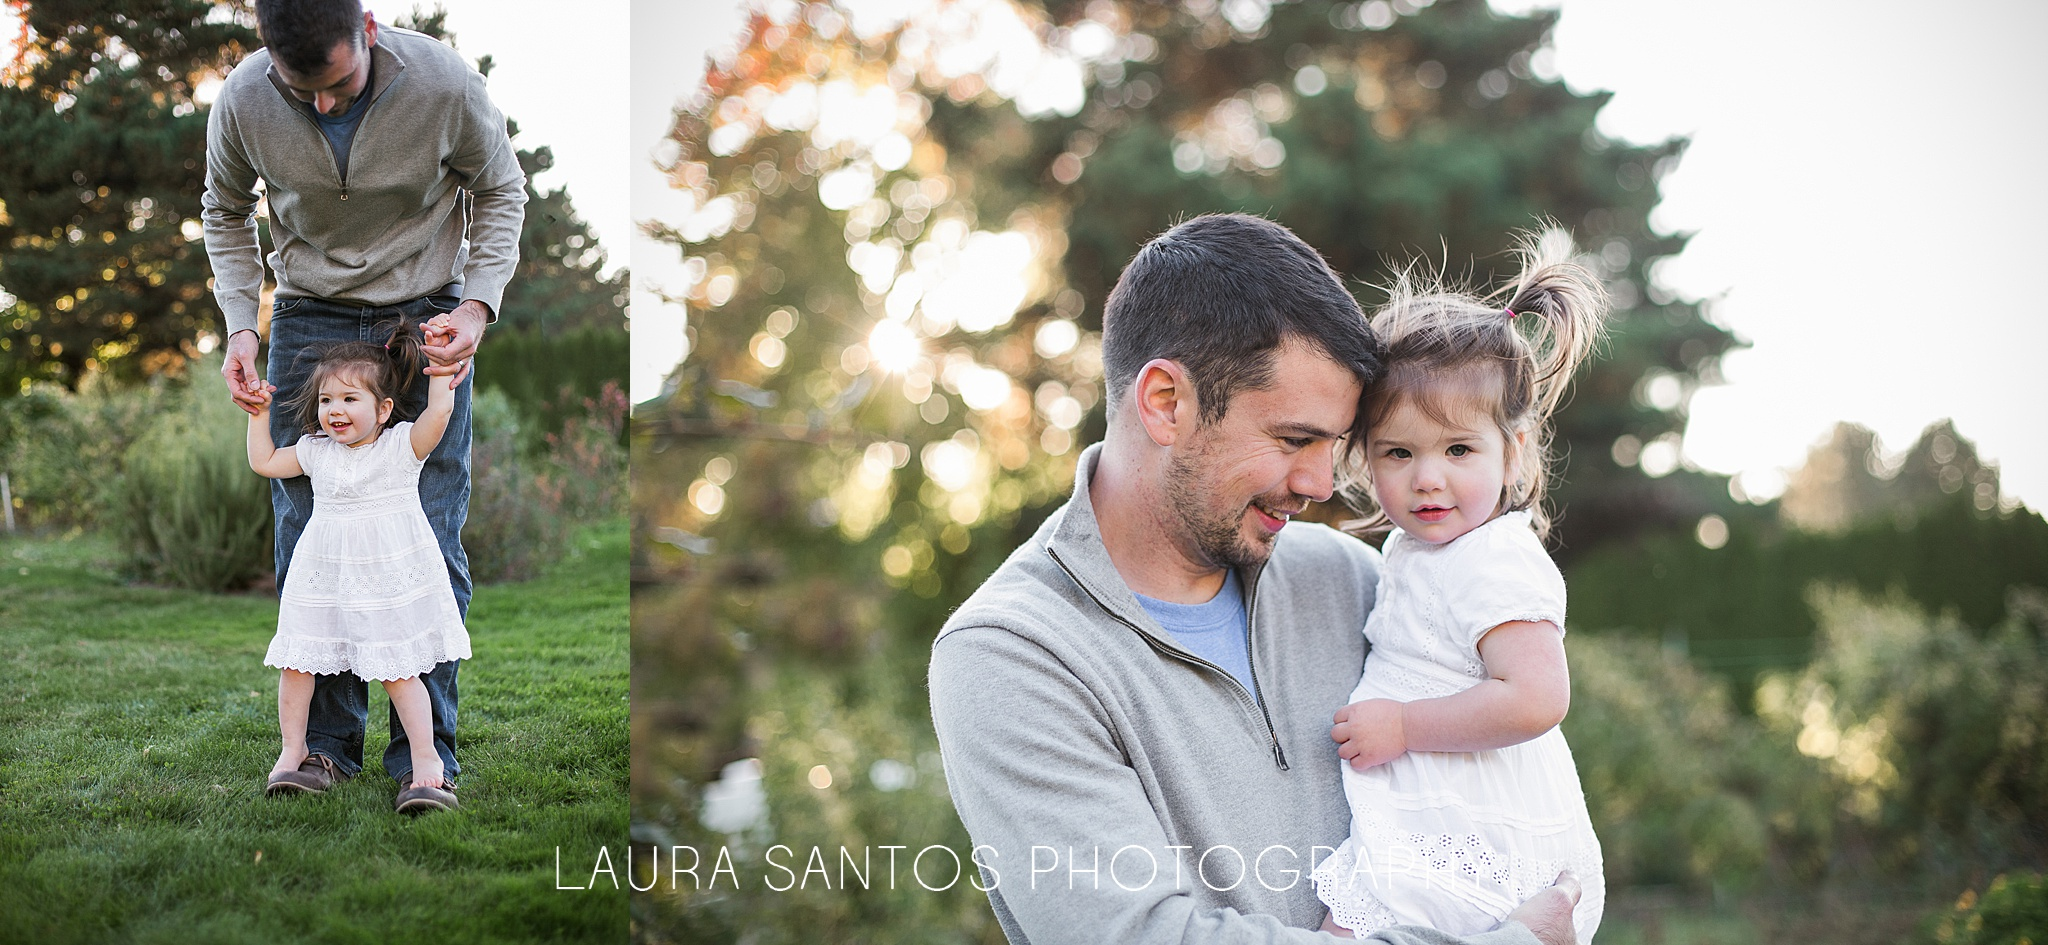 Laura Santos Photography Portland Oregon Family Photographer_0834.jpg